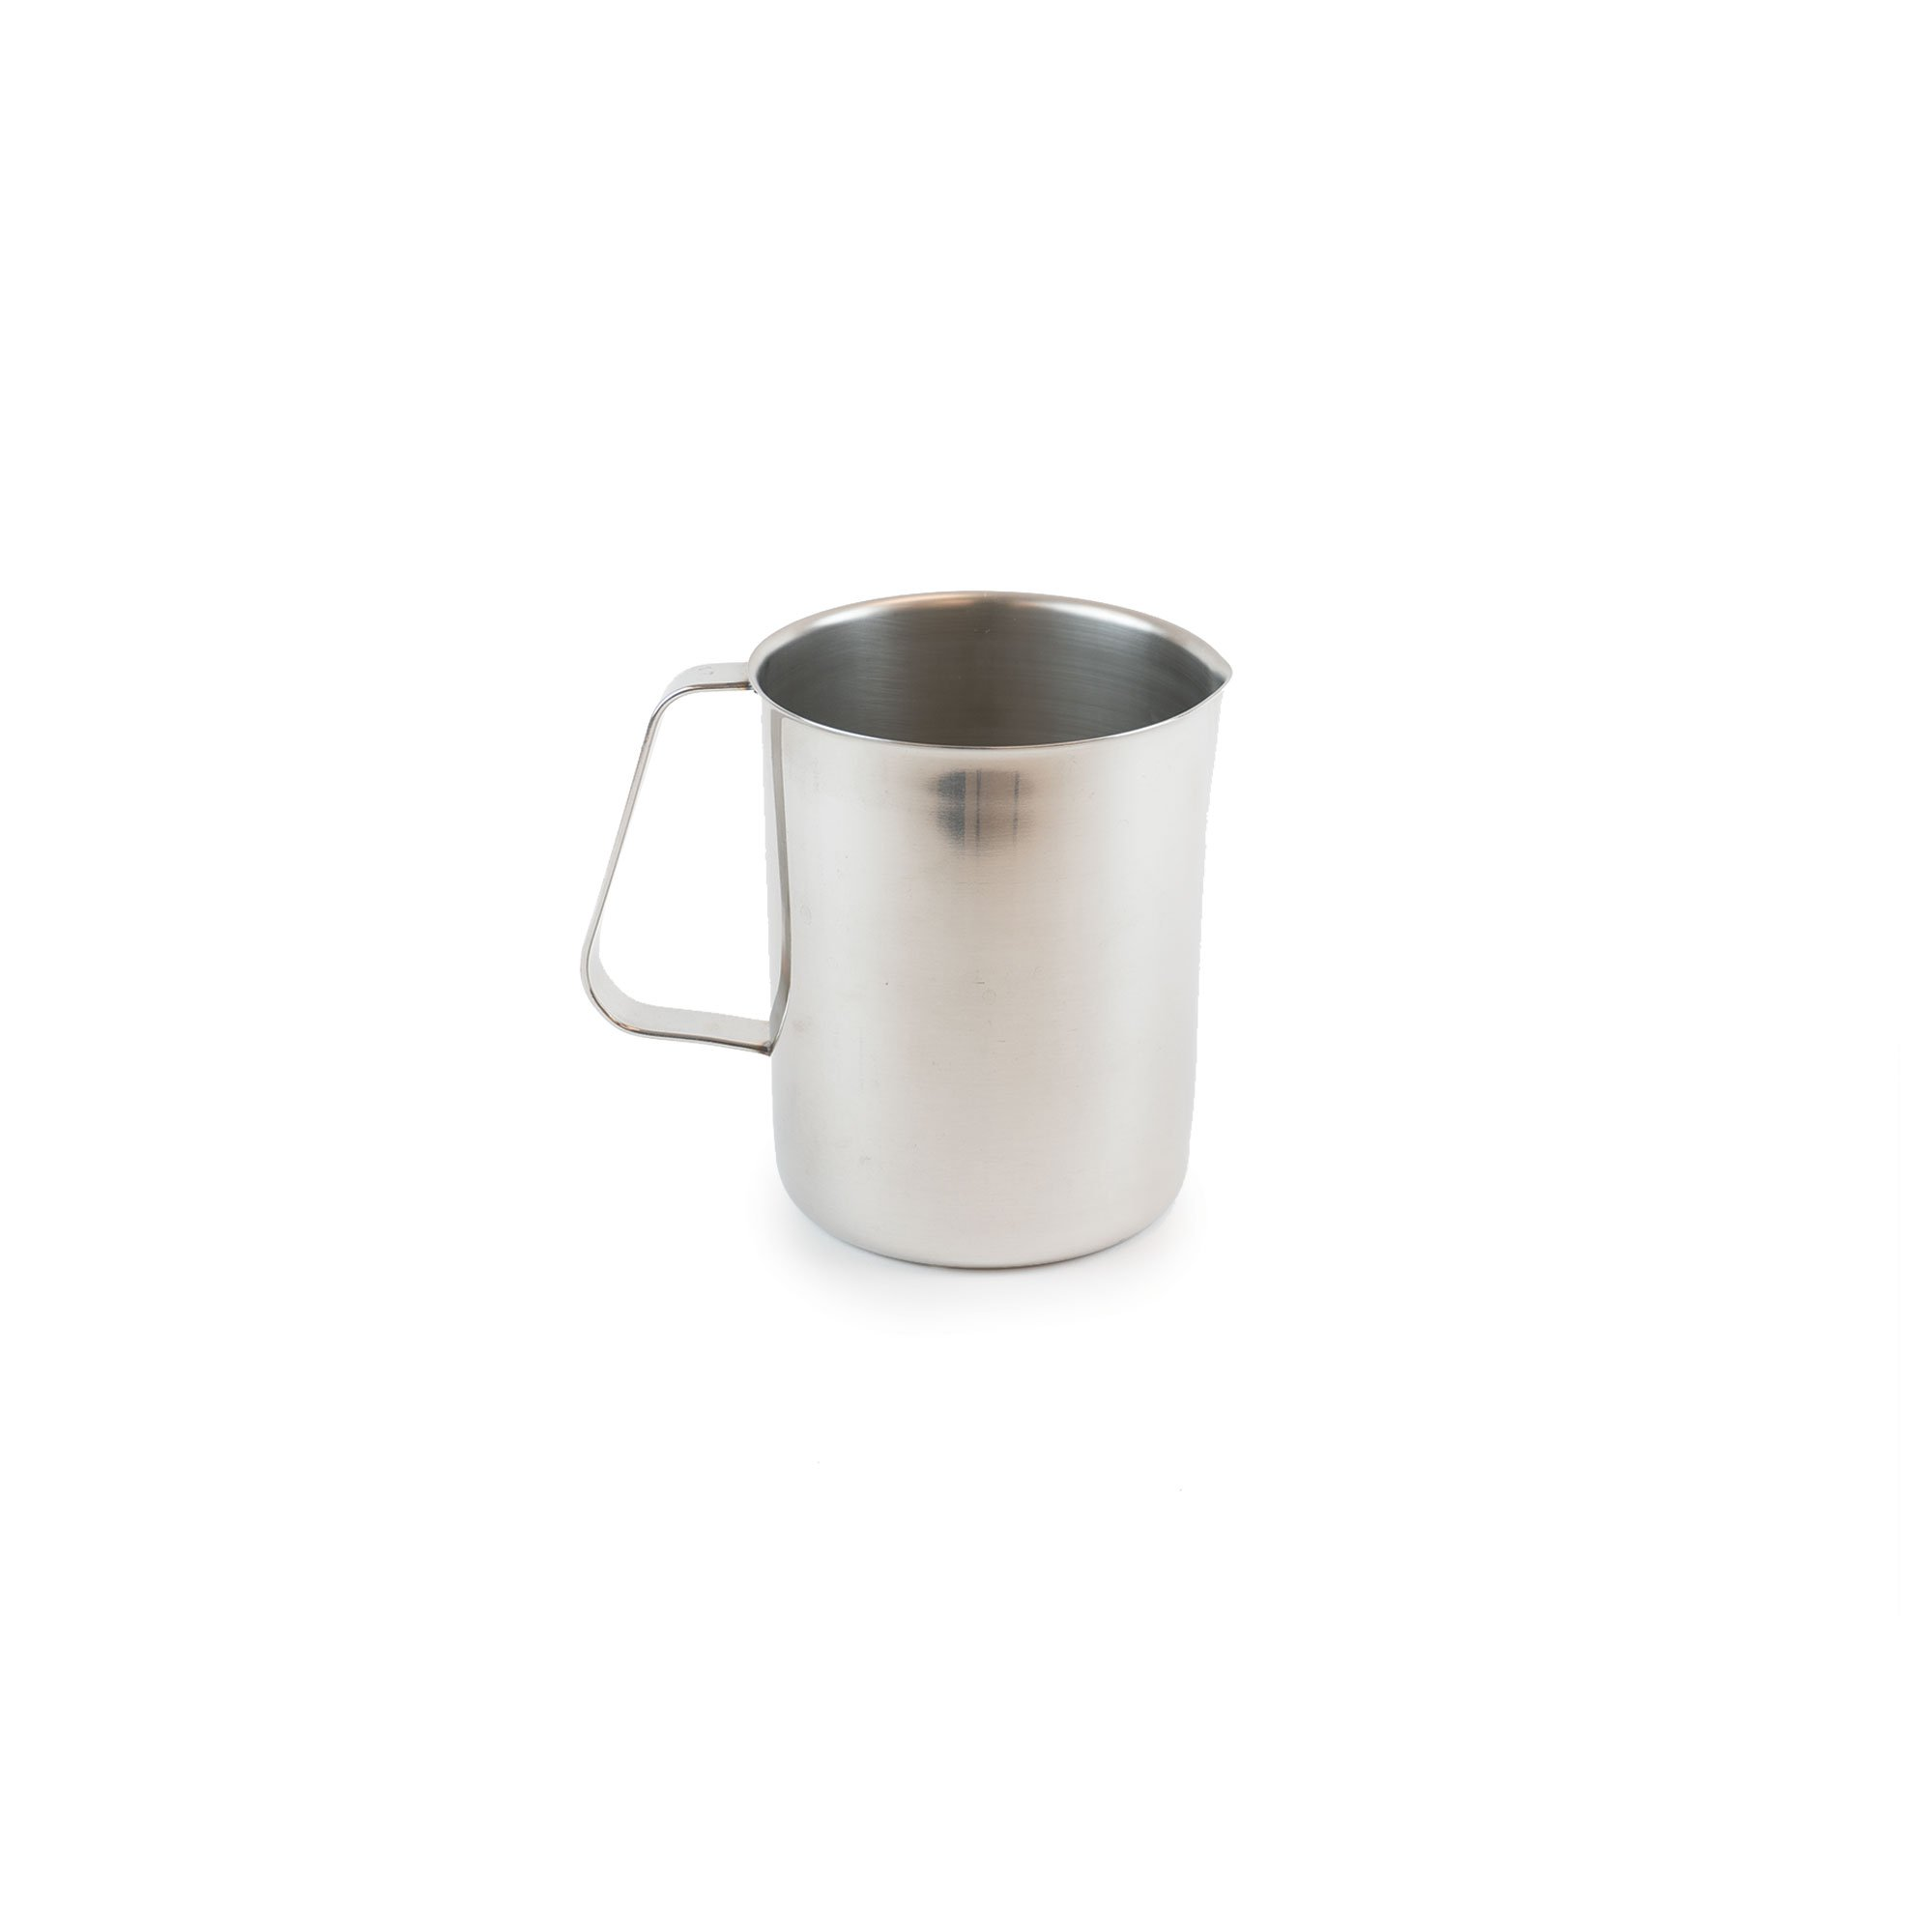 Medegen Medical Products 81020 Patient Bedside Pitcher, Straight-Sided, Stainless Steel, 2 Quart Capacity, 5-1/8'' x 4-3/4'' x 6-3/8''